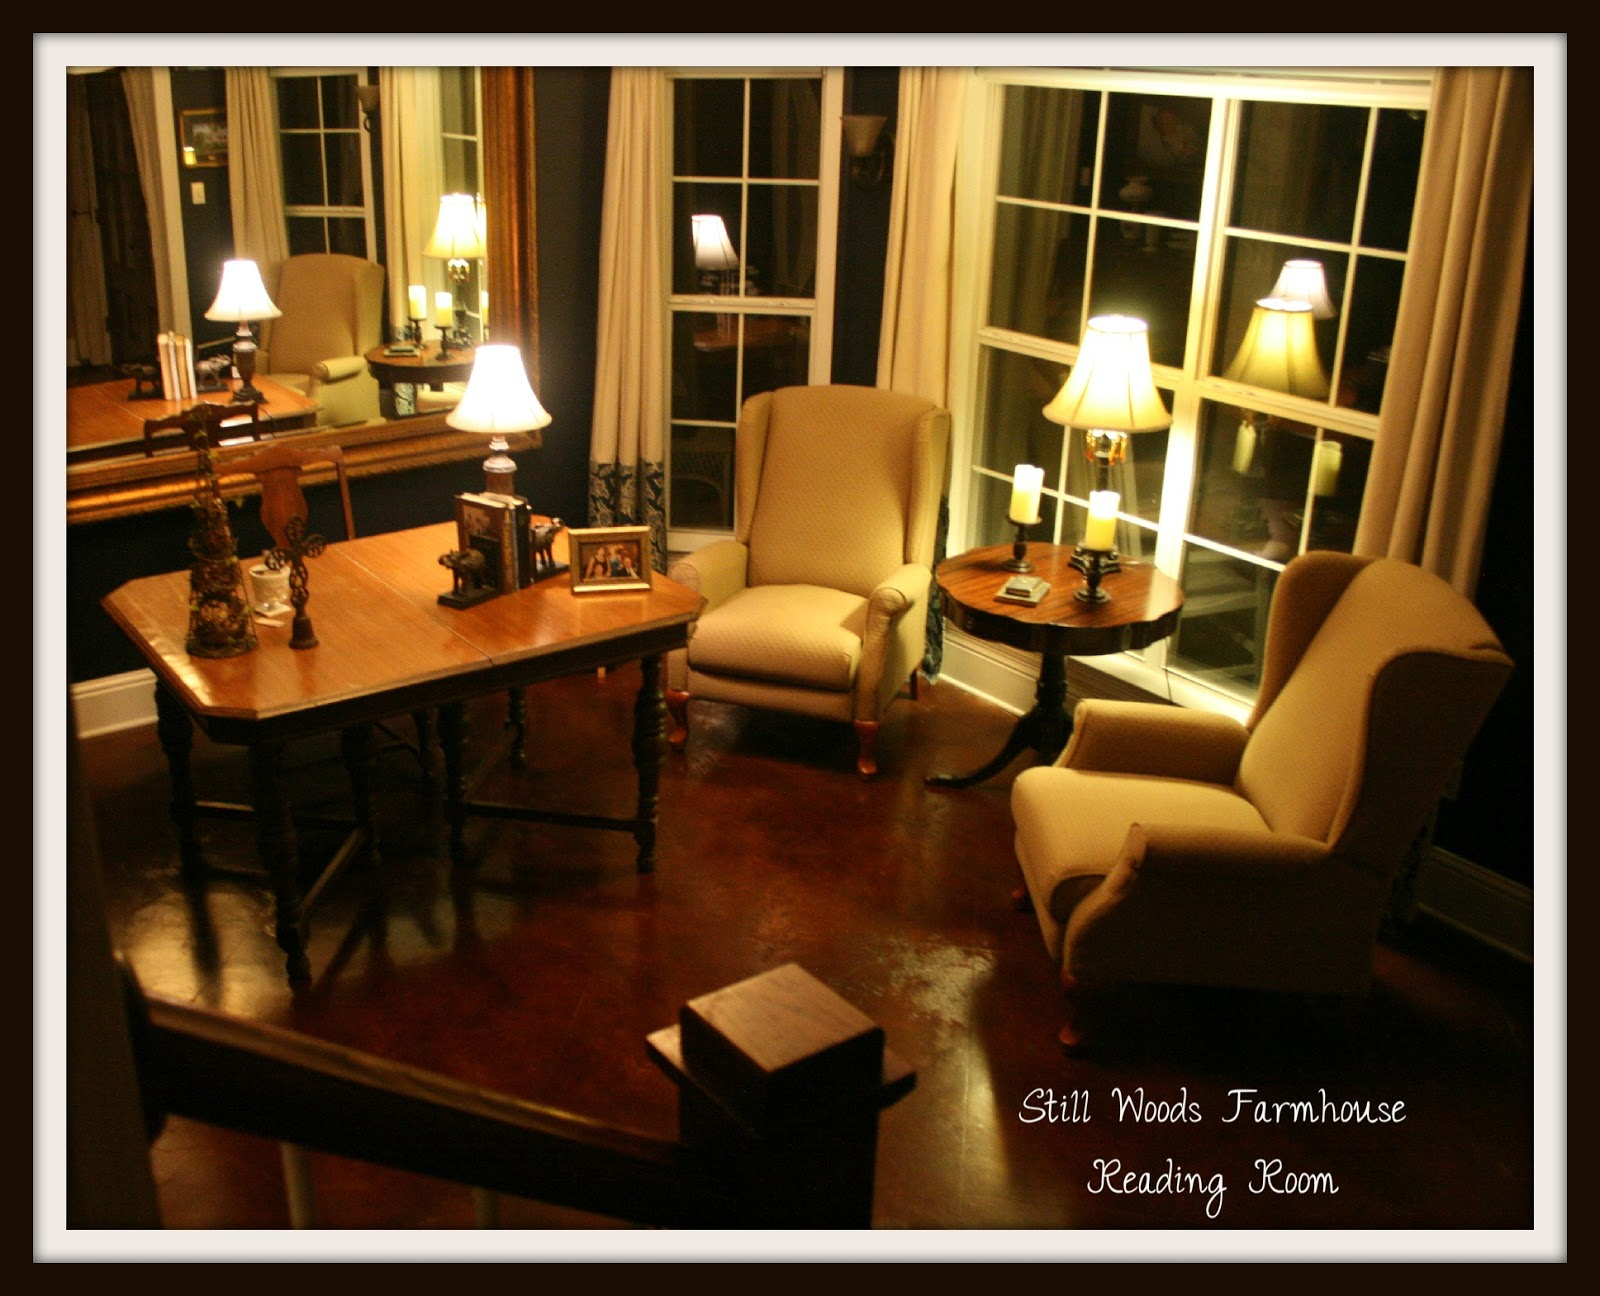 Still Woods Farmhouse Reading Room Update : ReadingRoom1 from stillwoodsfarmhouse.blogspot.com size 1600 x 1296 jpeg 309kB